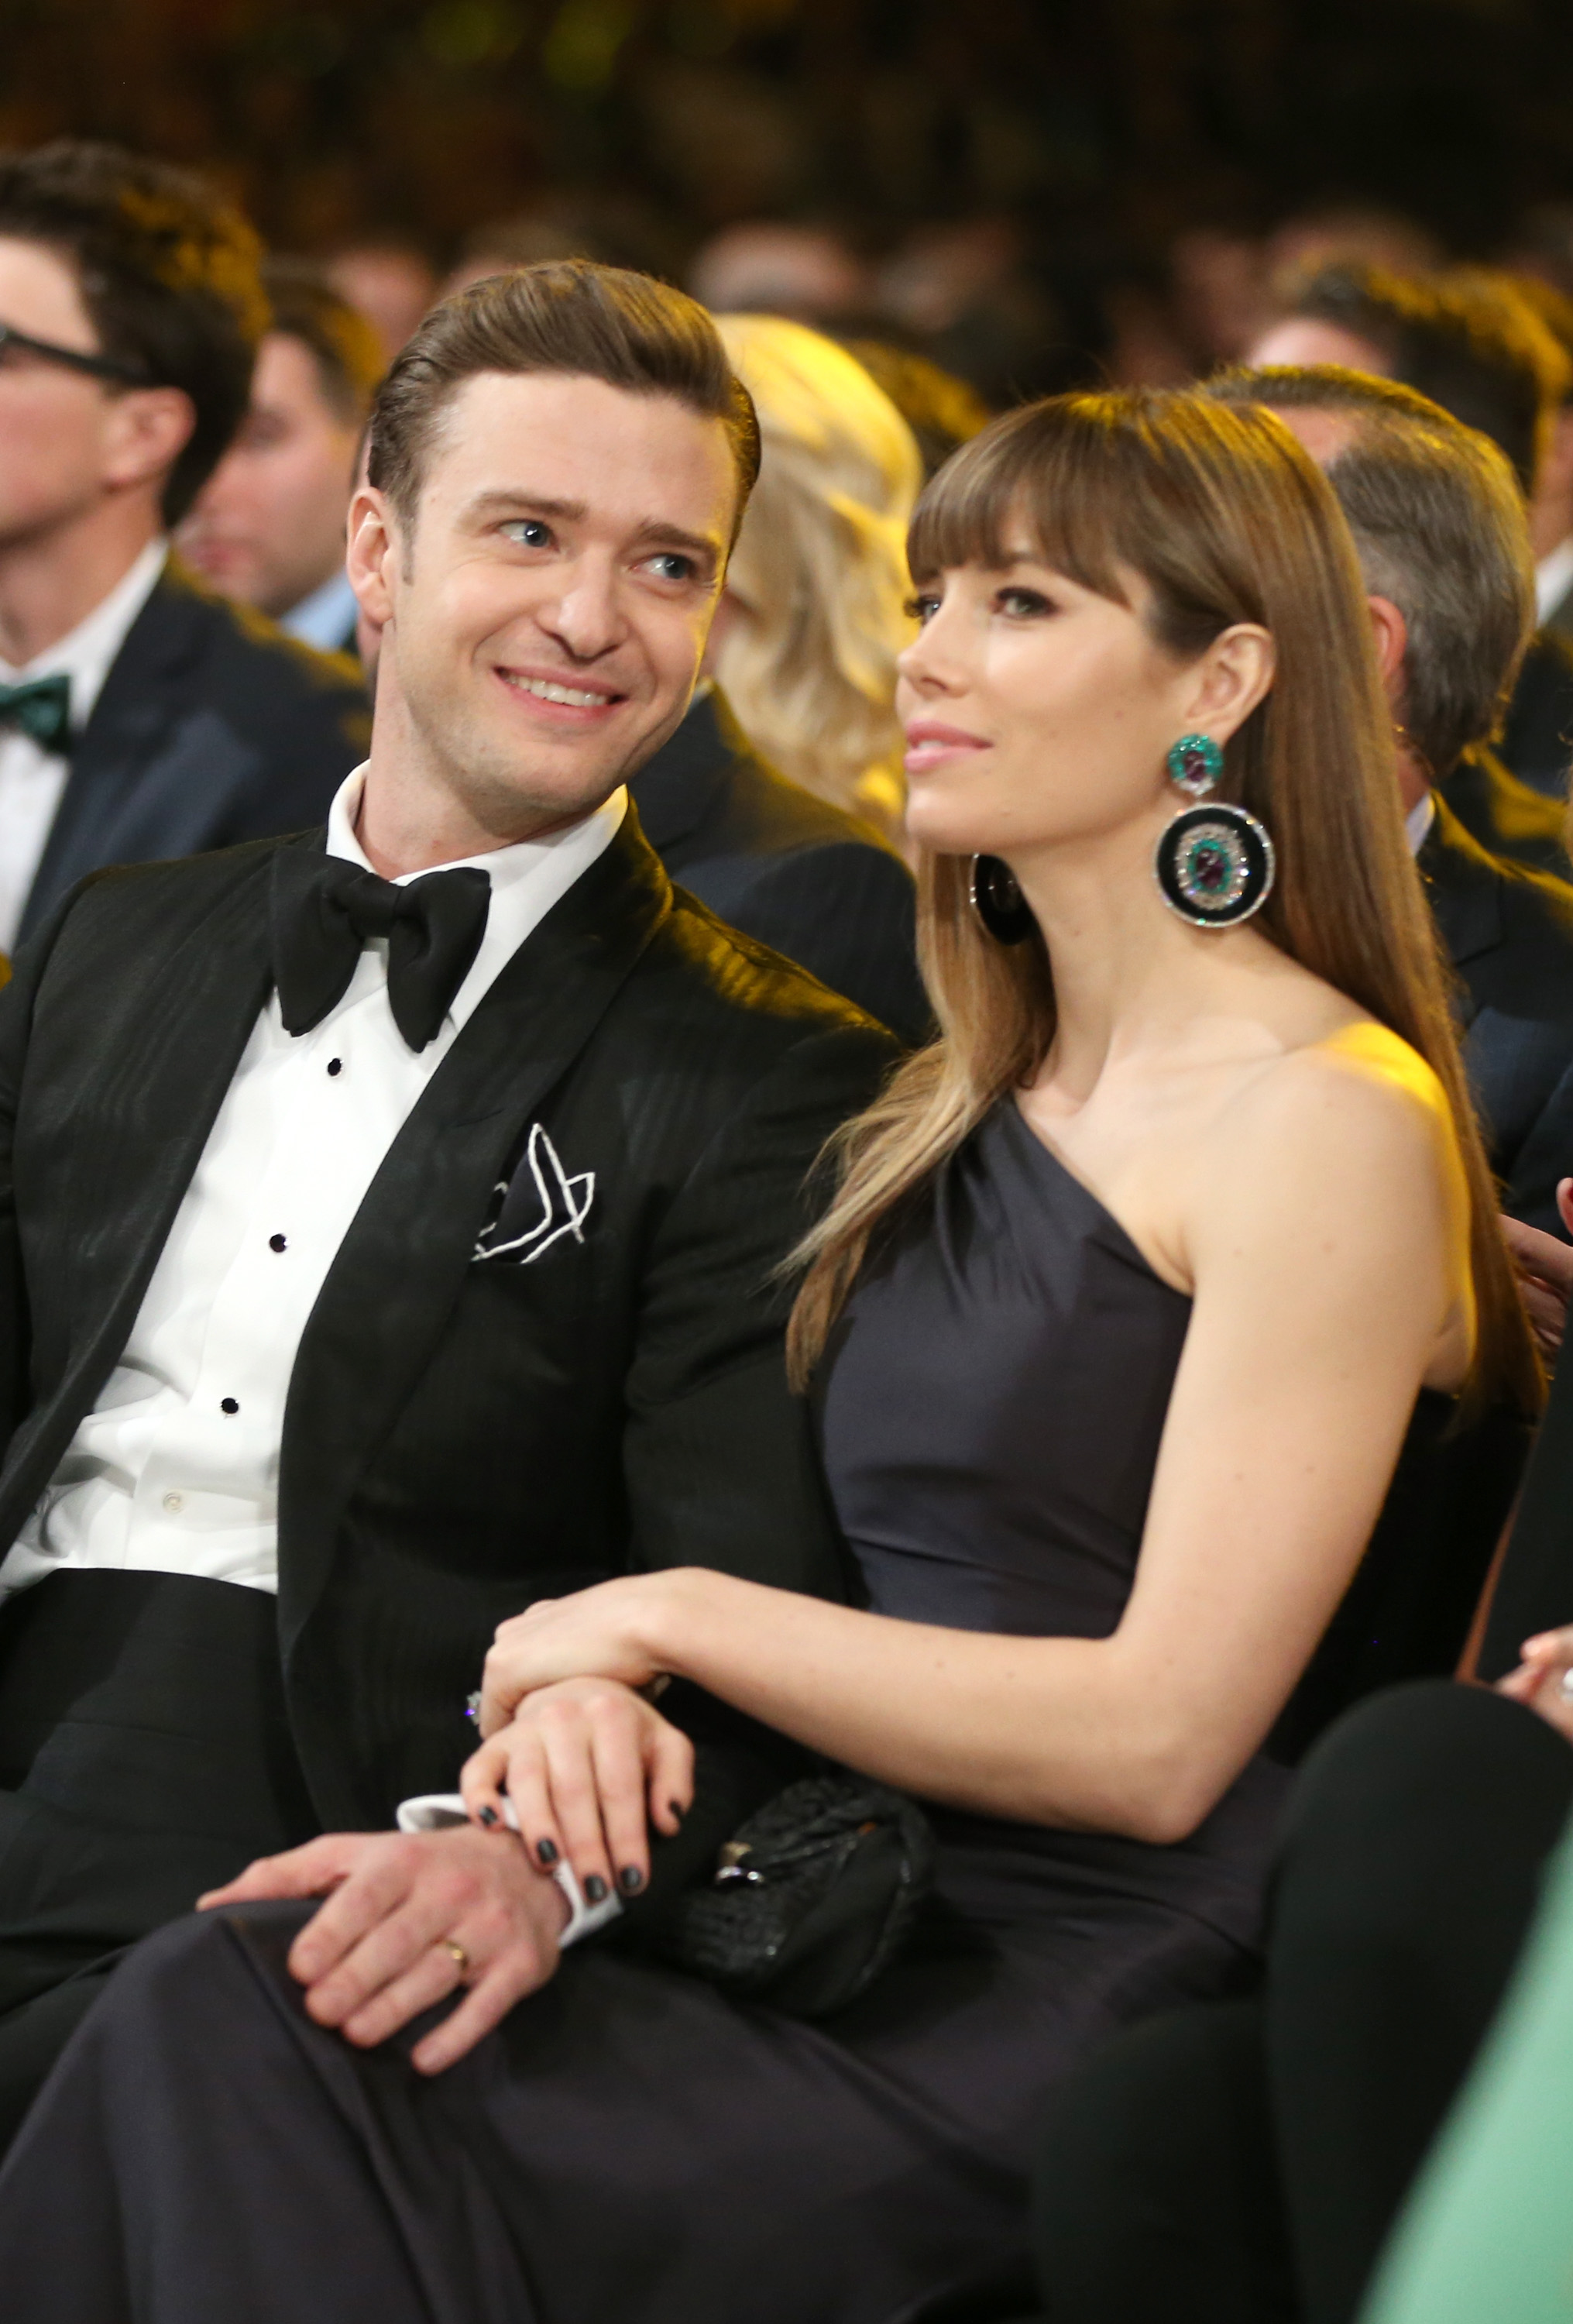 Justin Timberlake gave wife Jessica Biel a loving glance during the 2013 Grammys in LA.